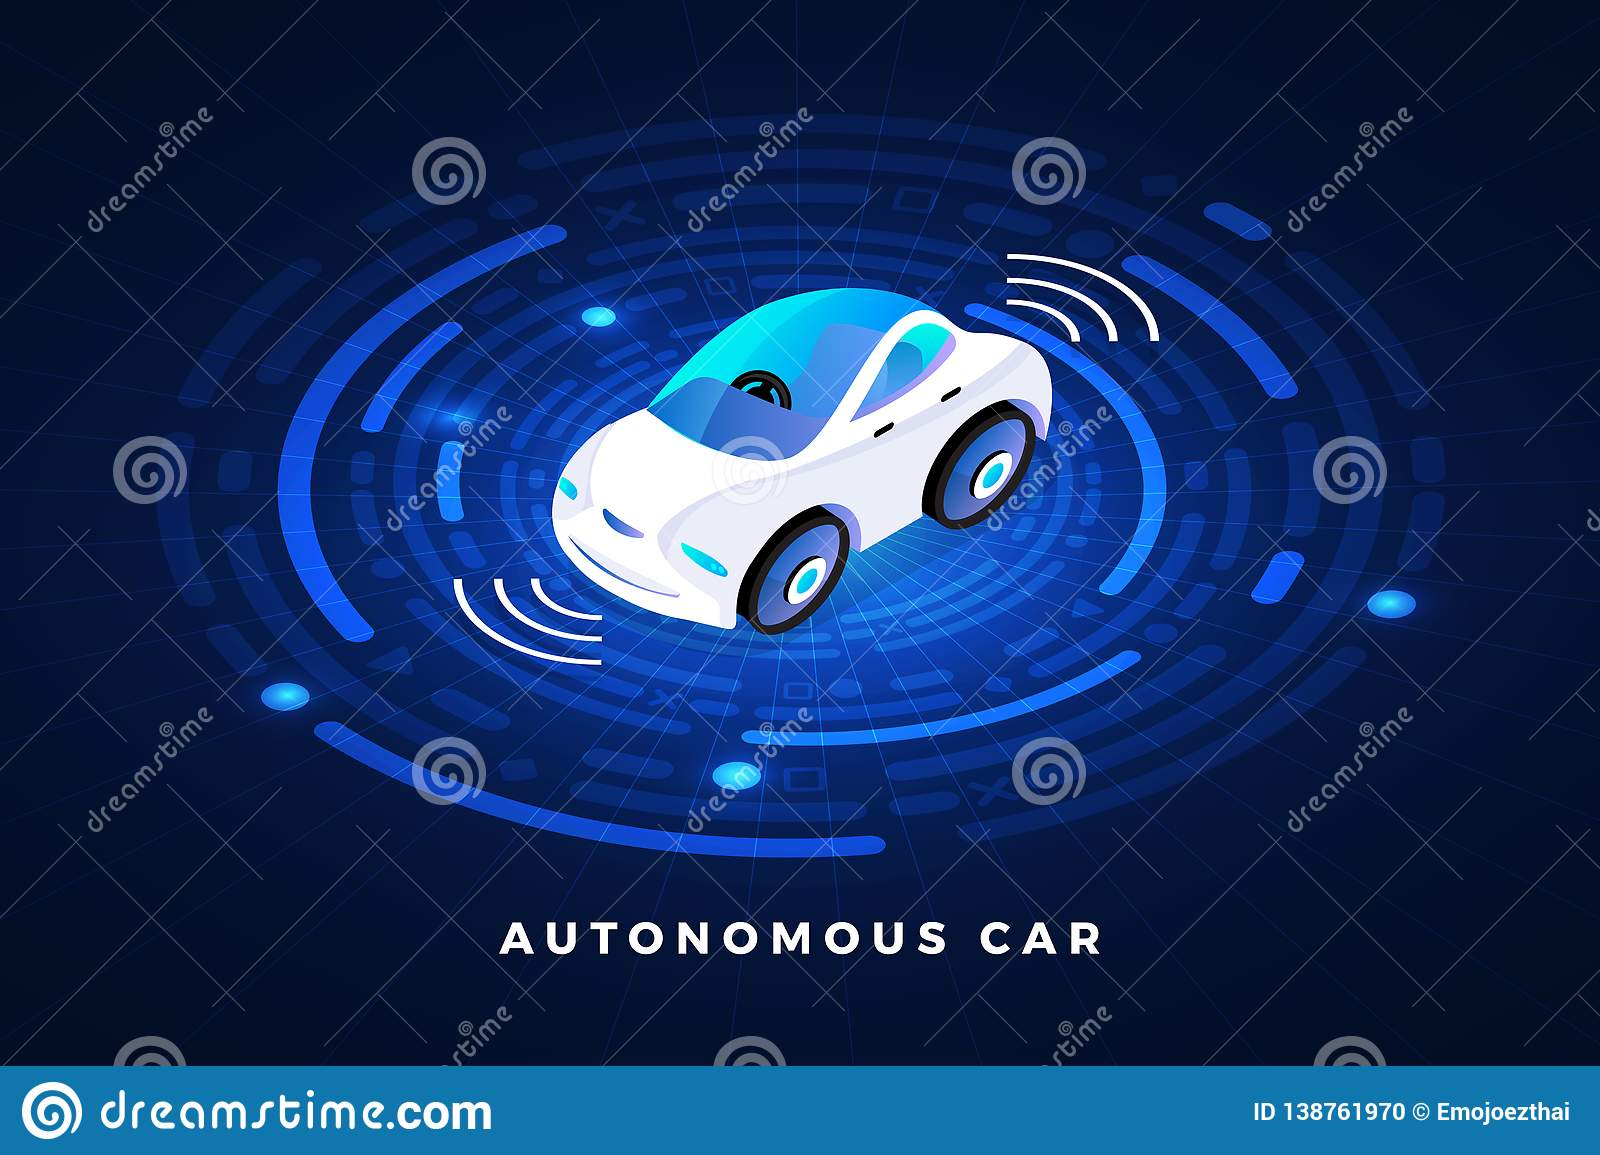 Autonomous Car Conceept stock vector  Illustration of